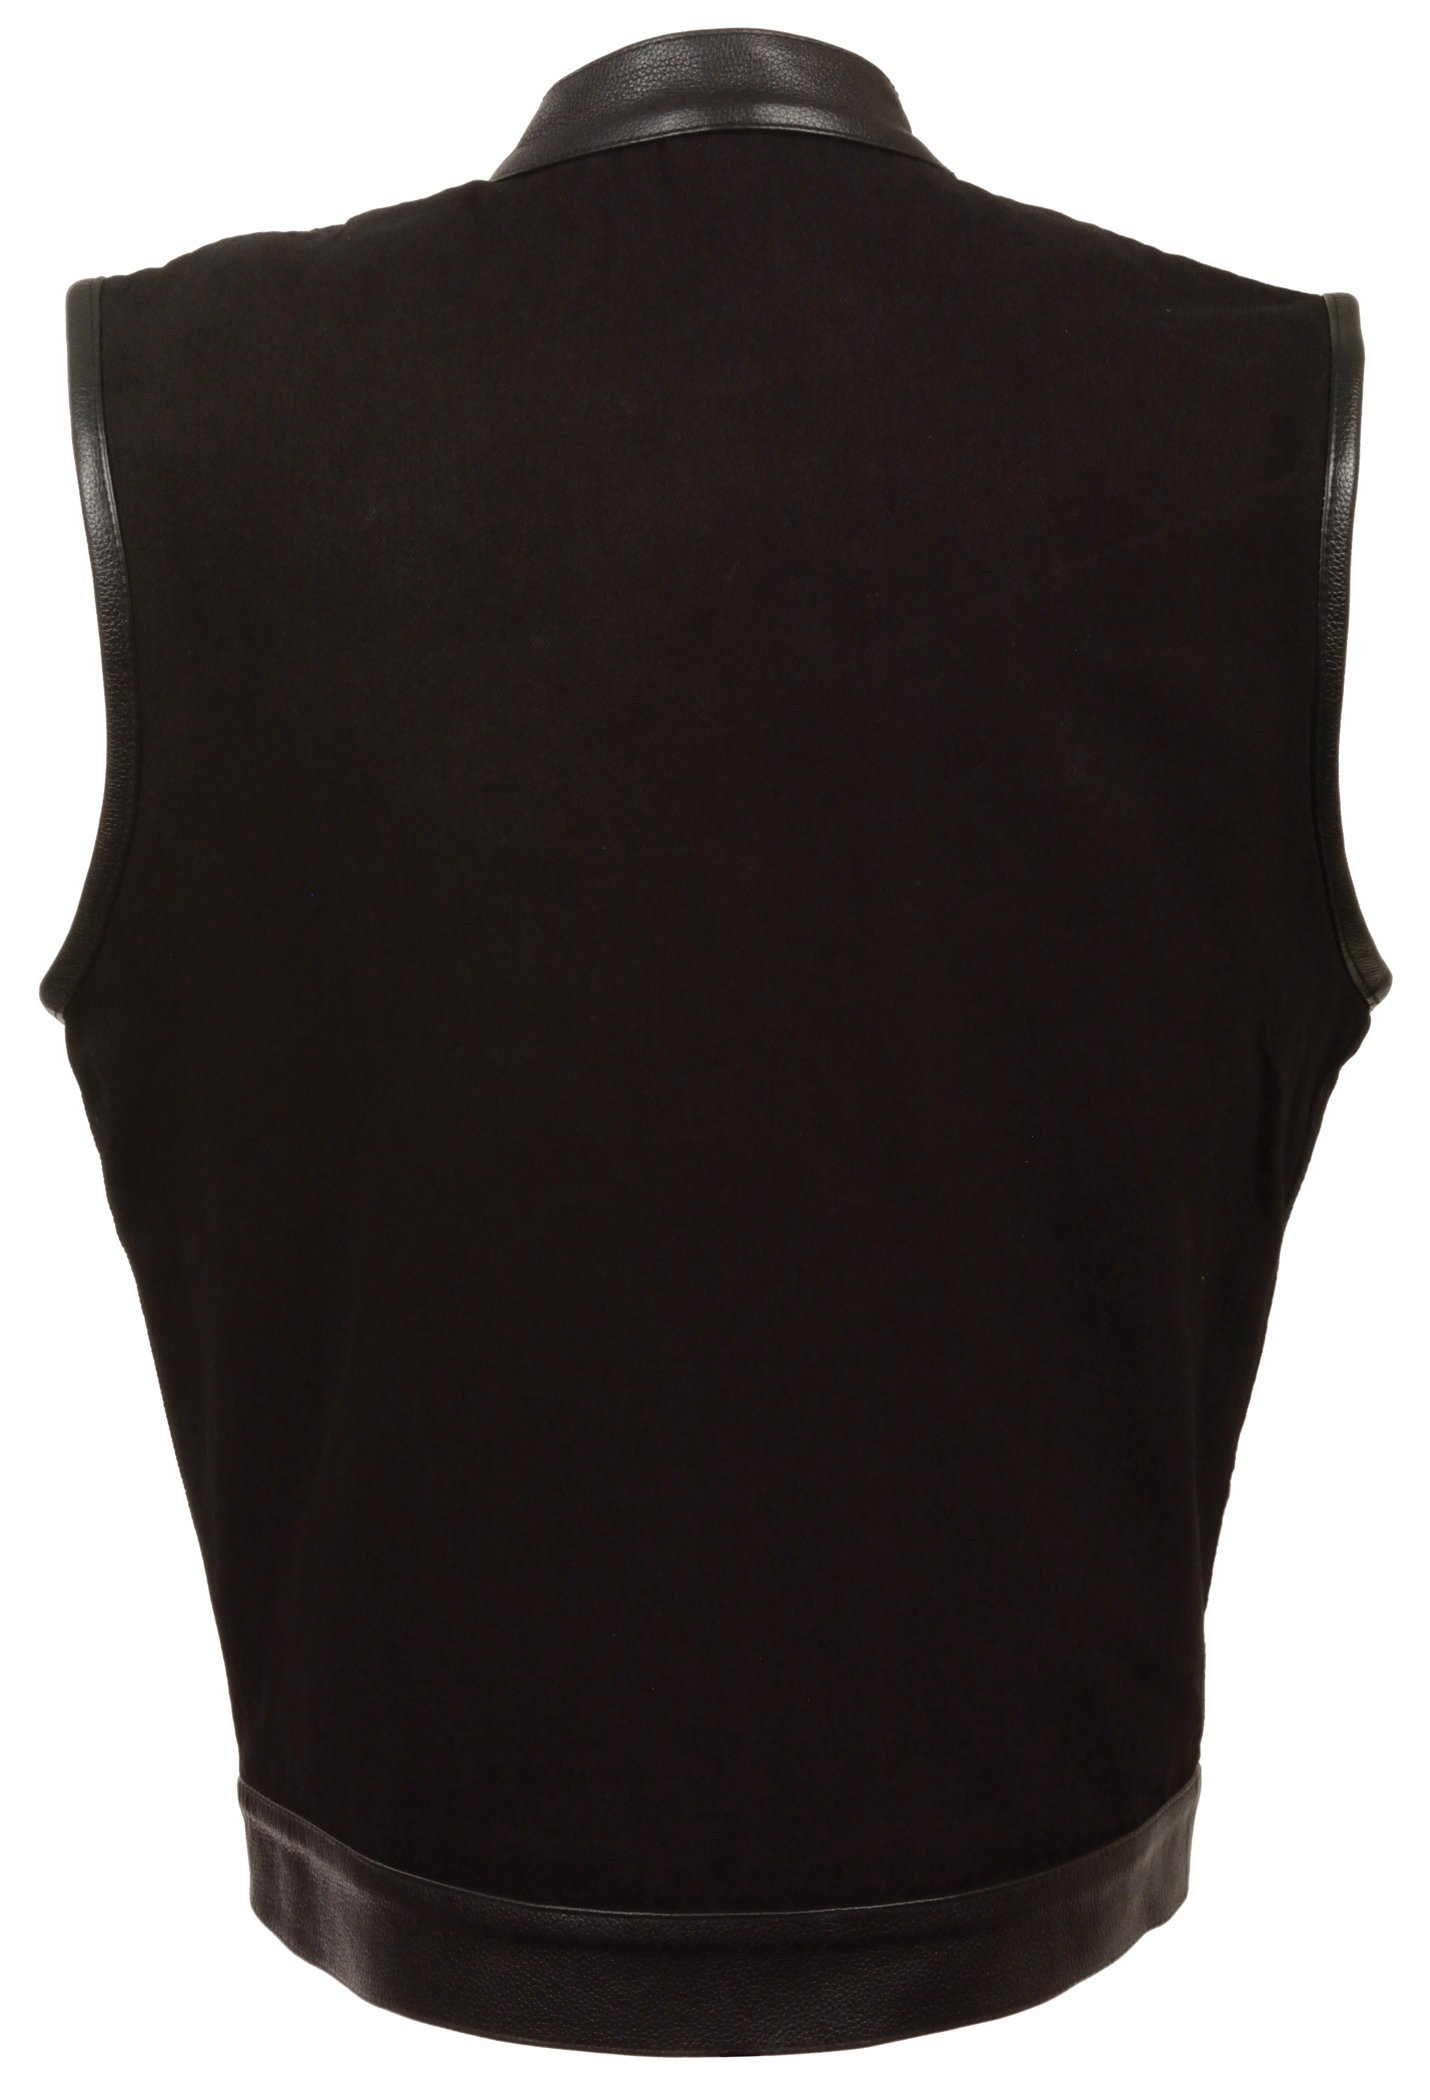 The Ultimate One Stop Shop for All Club Style Zipper Front Vests - All Varieties of Club Cut Vests Leather & Denim (4X - Big, Leather Trim) by Milwaukee (Image #2)